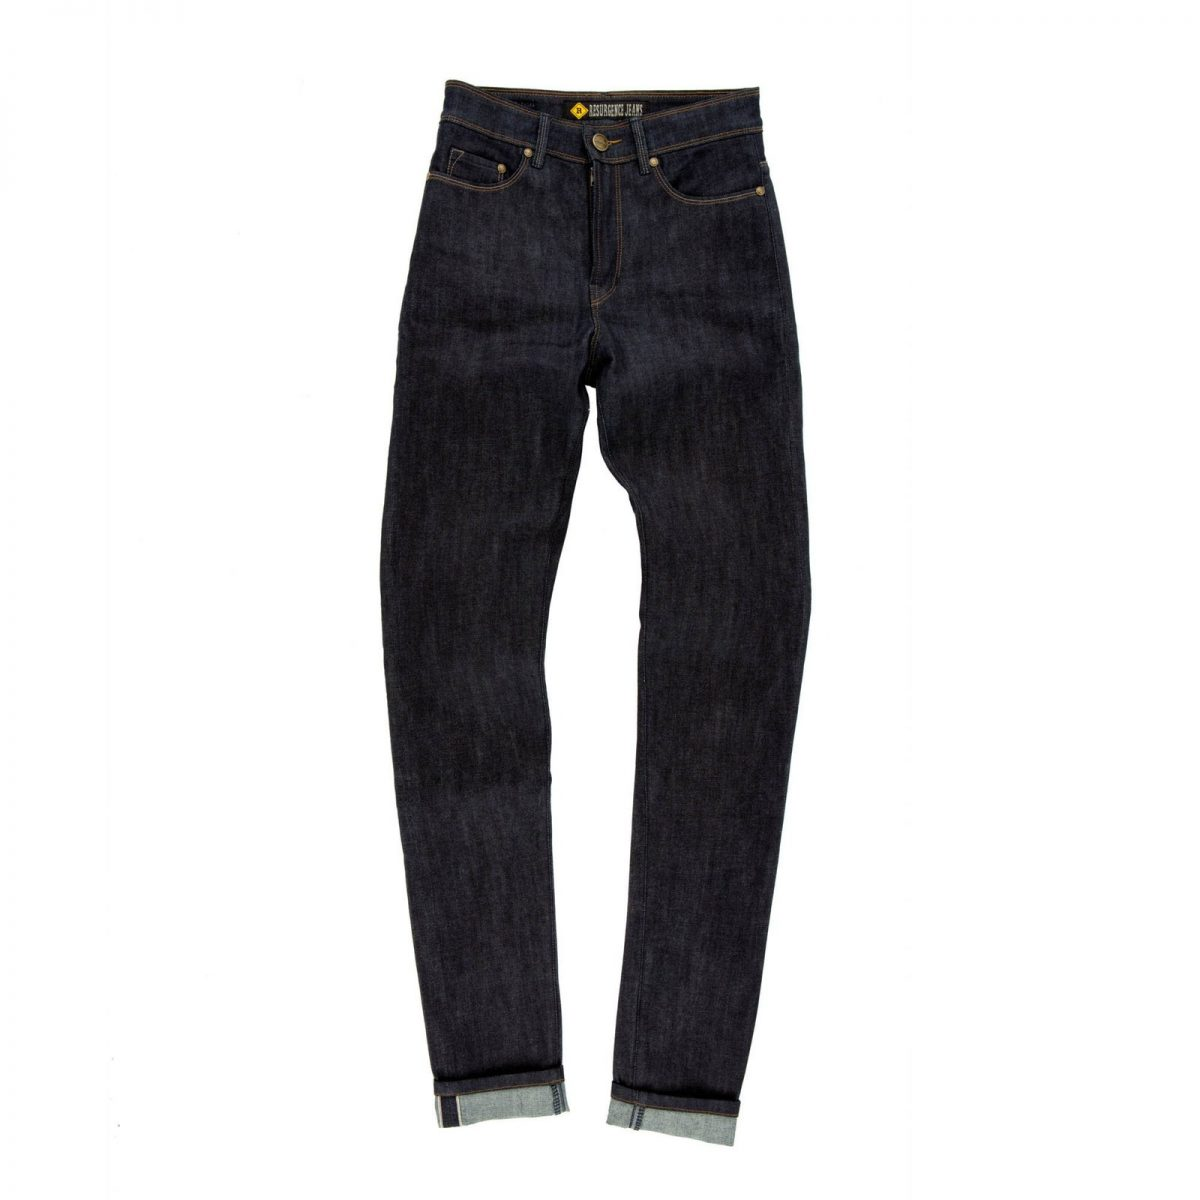 Resurgence Cafe Racer Skinny Ladies Jeans - Selvedge Raw